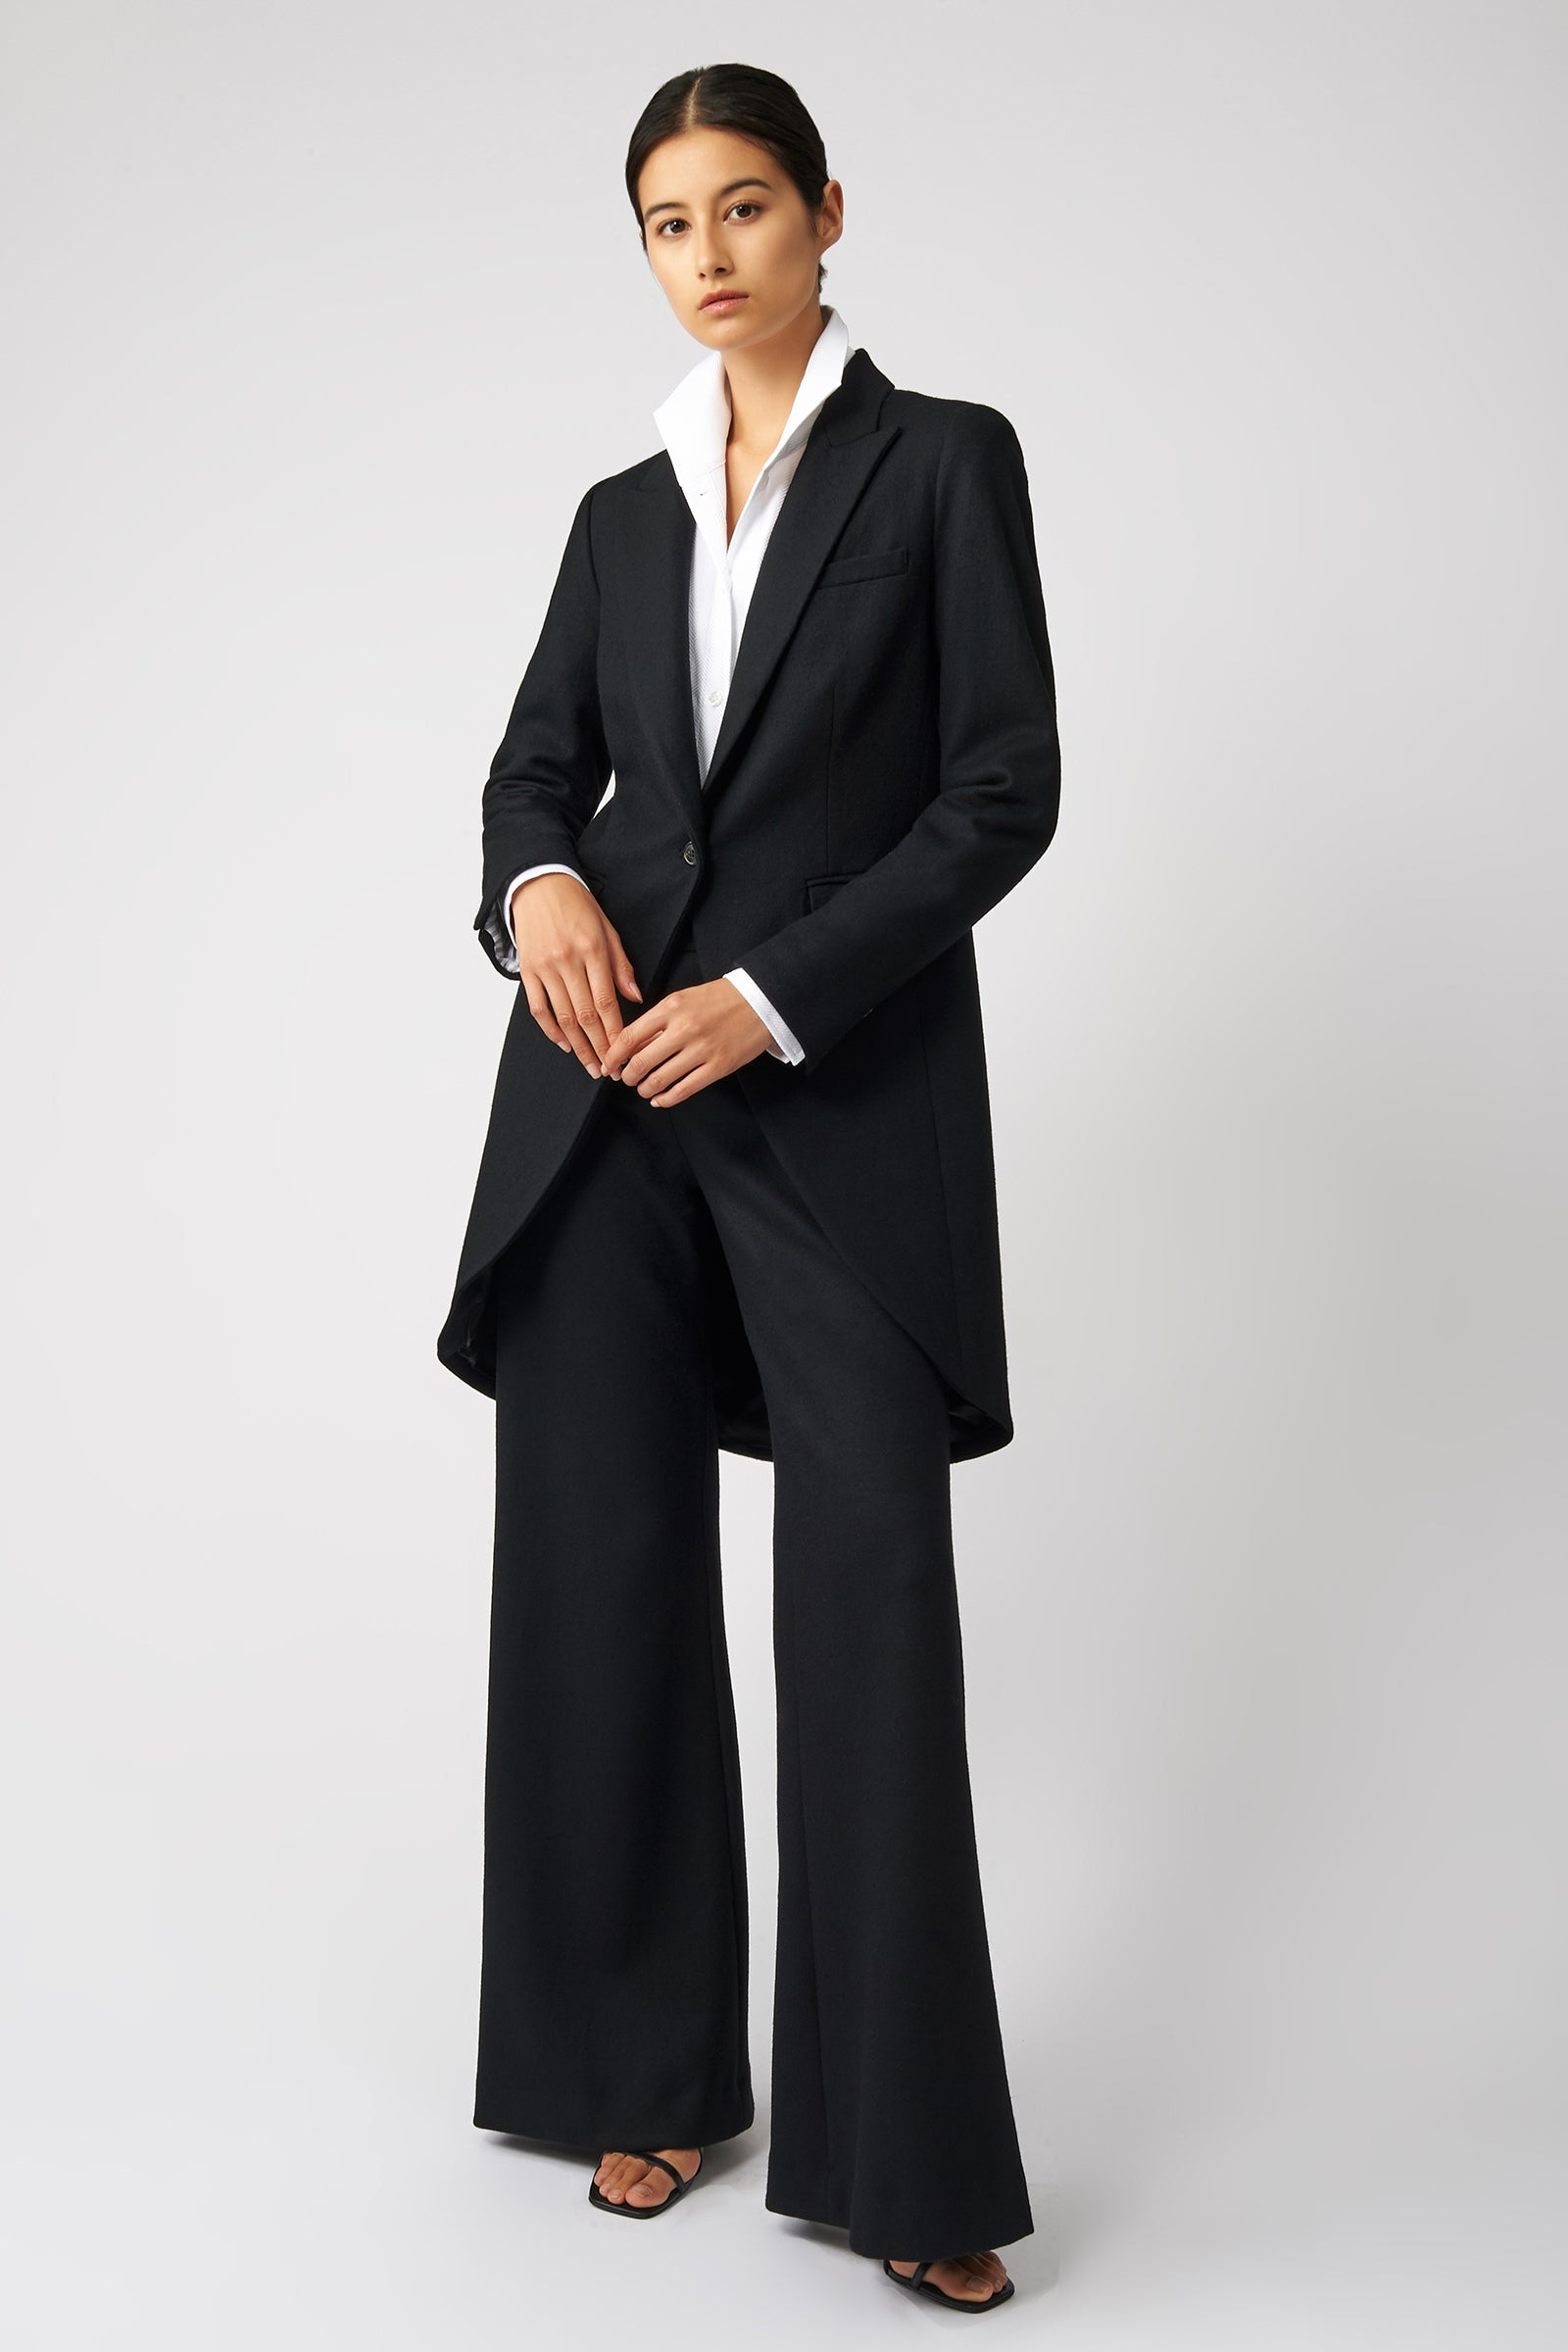 Kal Rieman Tailored Tux Blazer in Black on Model Full Front View